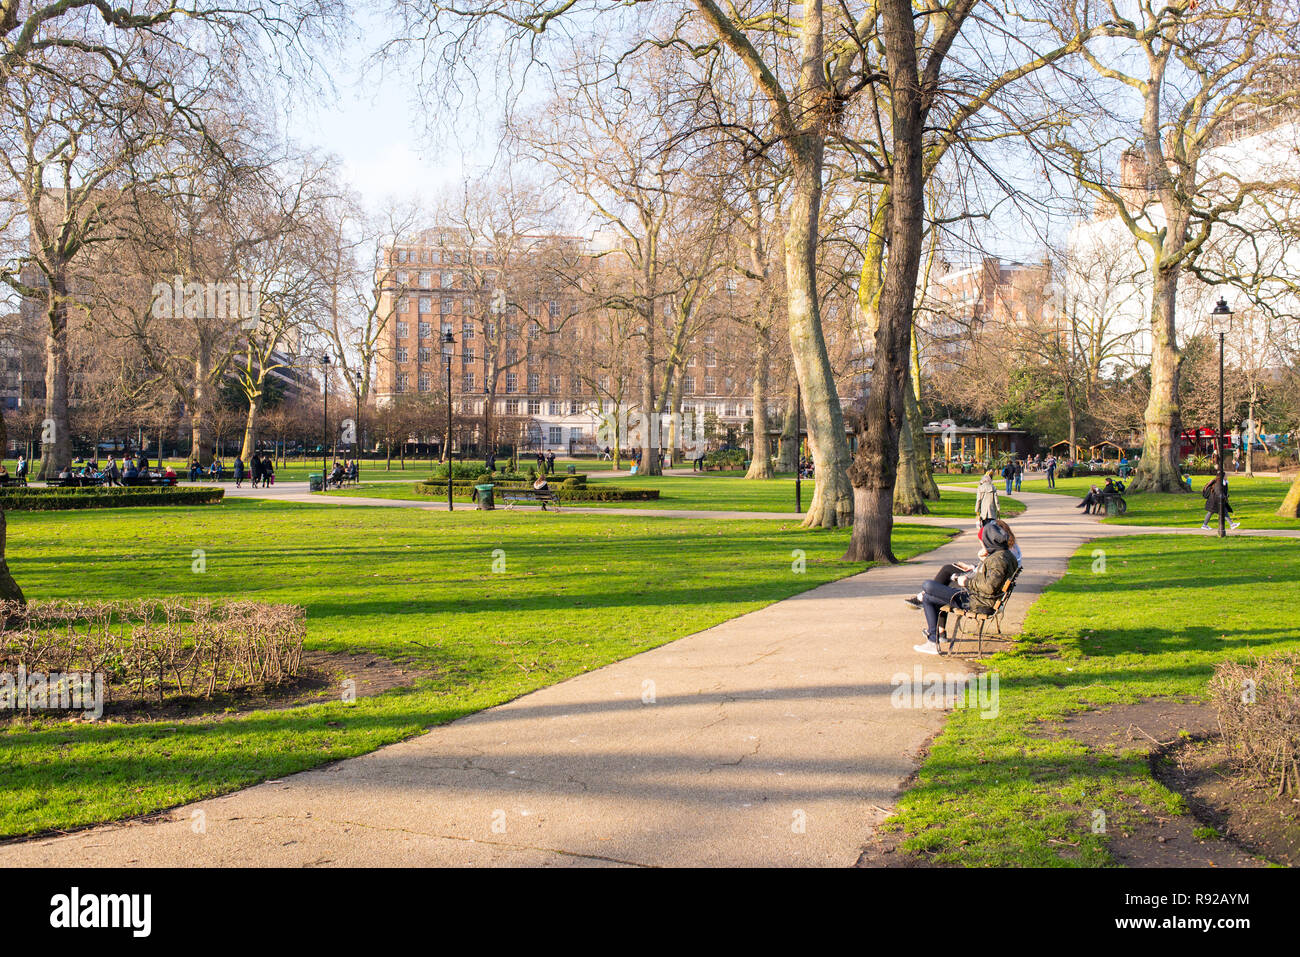 Russell Square, London, UK - February 2017. People in Russell Square, a large garden square in Bloomsbury, in the London Borough of Camden Stock Photo